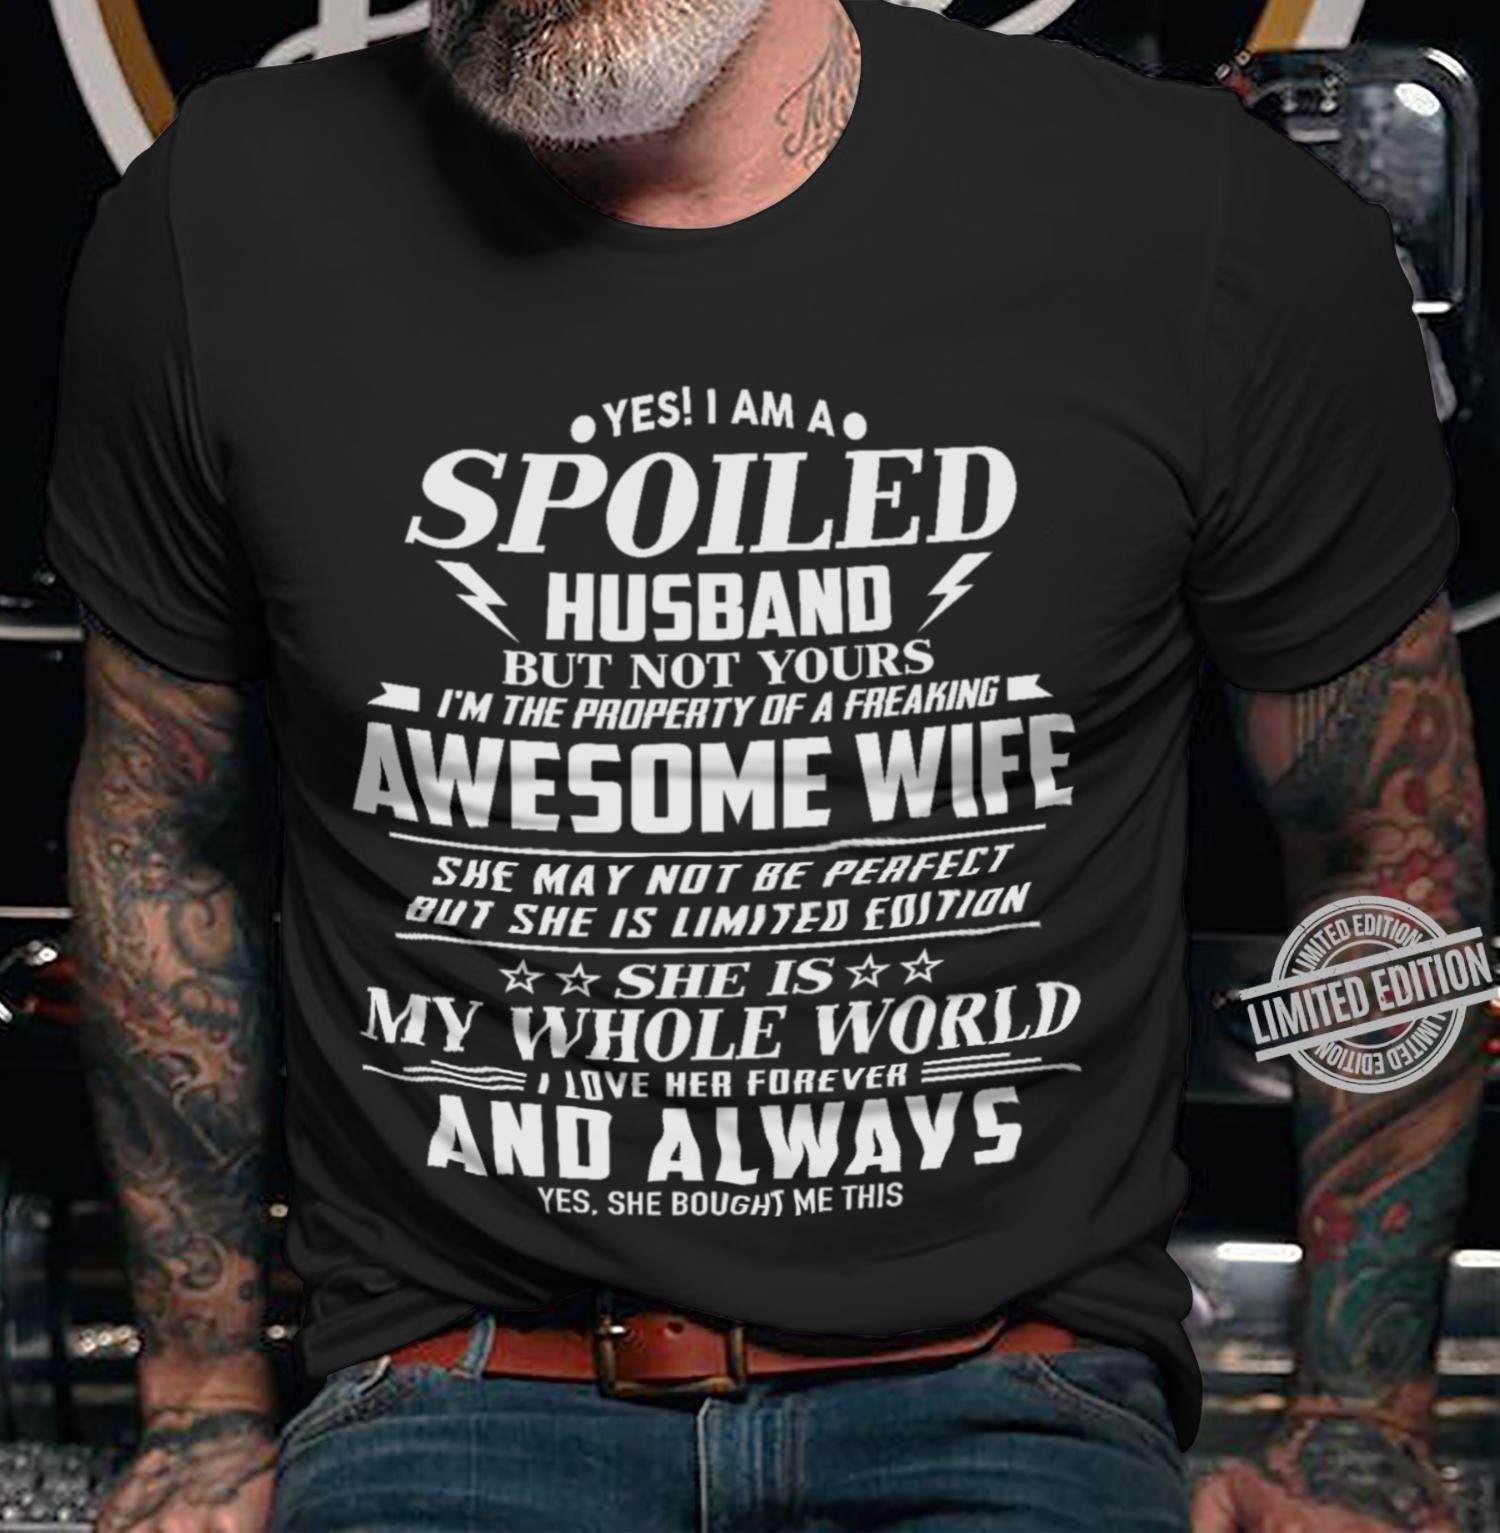 Yes I Am A Spoiled Husband But Not Yours I'm The Property Of A Freaking Awesome Wife She Is My Whole World I Love Her Forever And Always Yes She Bought Me This Shirt